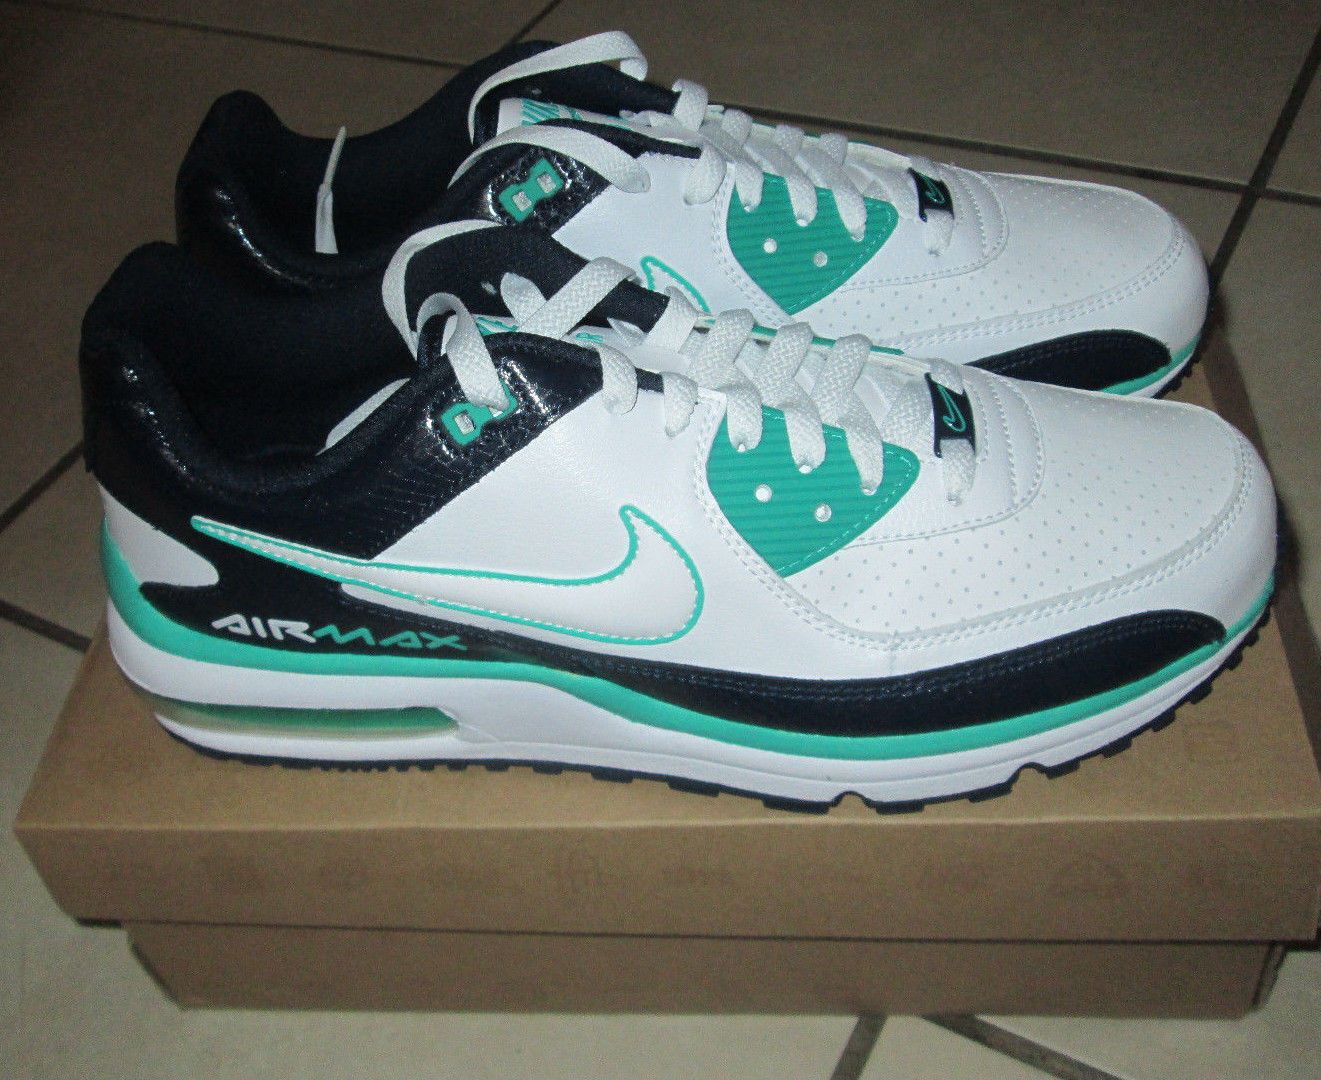 Nike Air Max Wright Size 10.5 Mens Shoes 317551-134 White/Teal